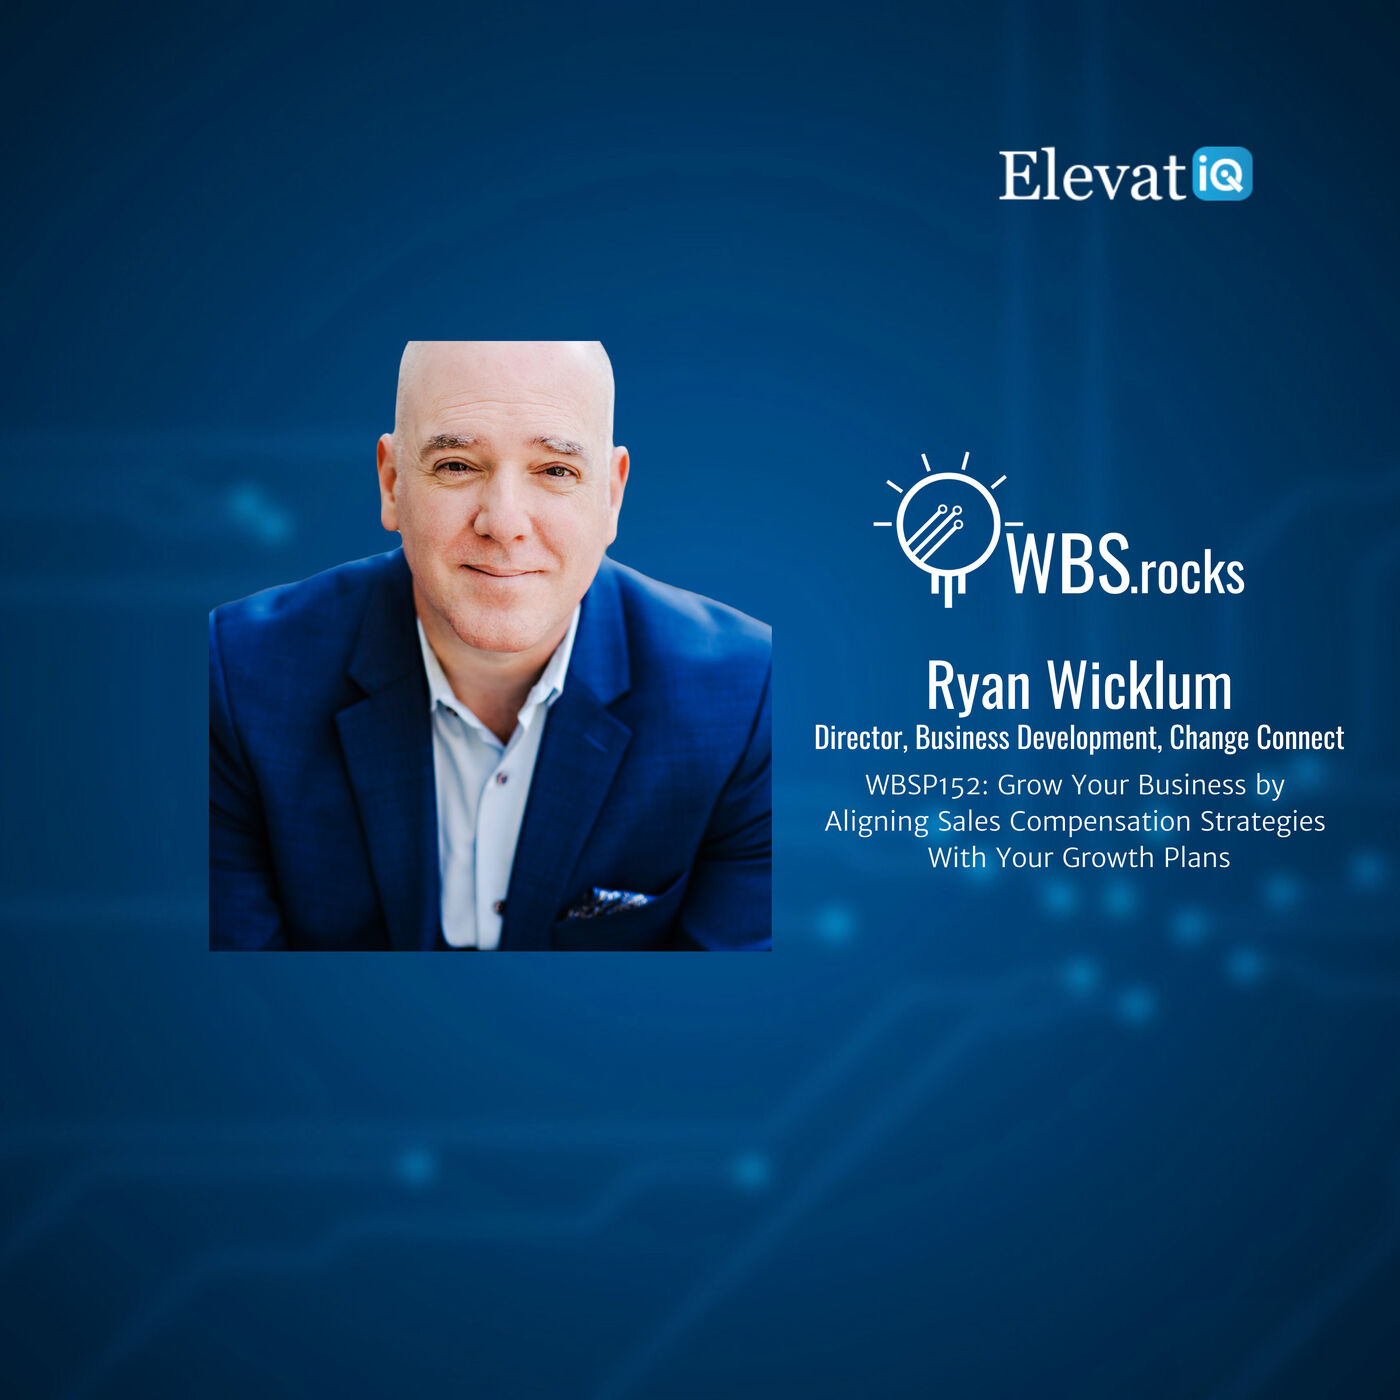 WBSP152: Grow Your Business by Aligning Sales Compensation Strategies With Your Growth Plans w/ Ryan Wicklum